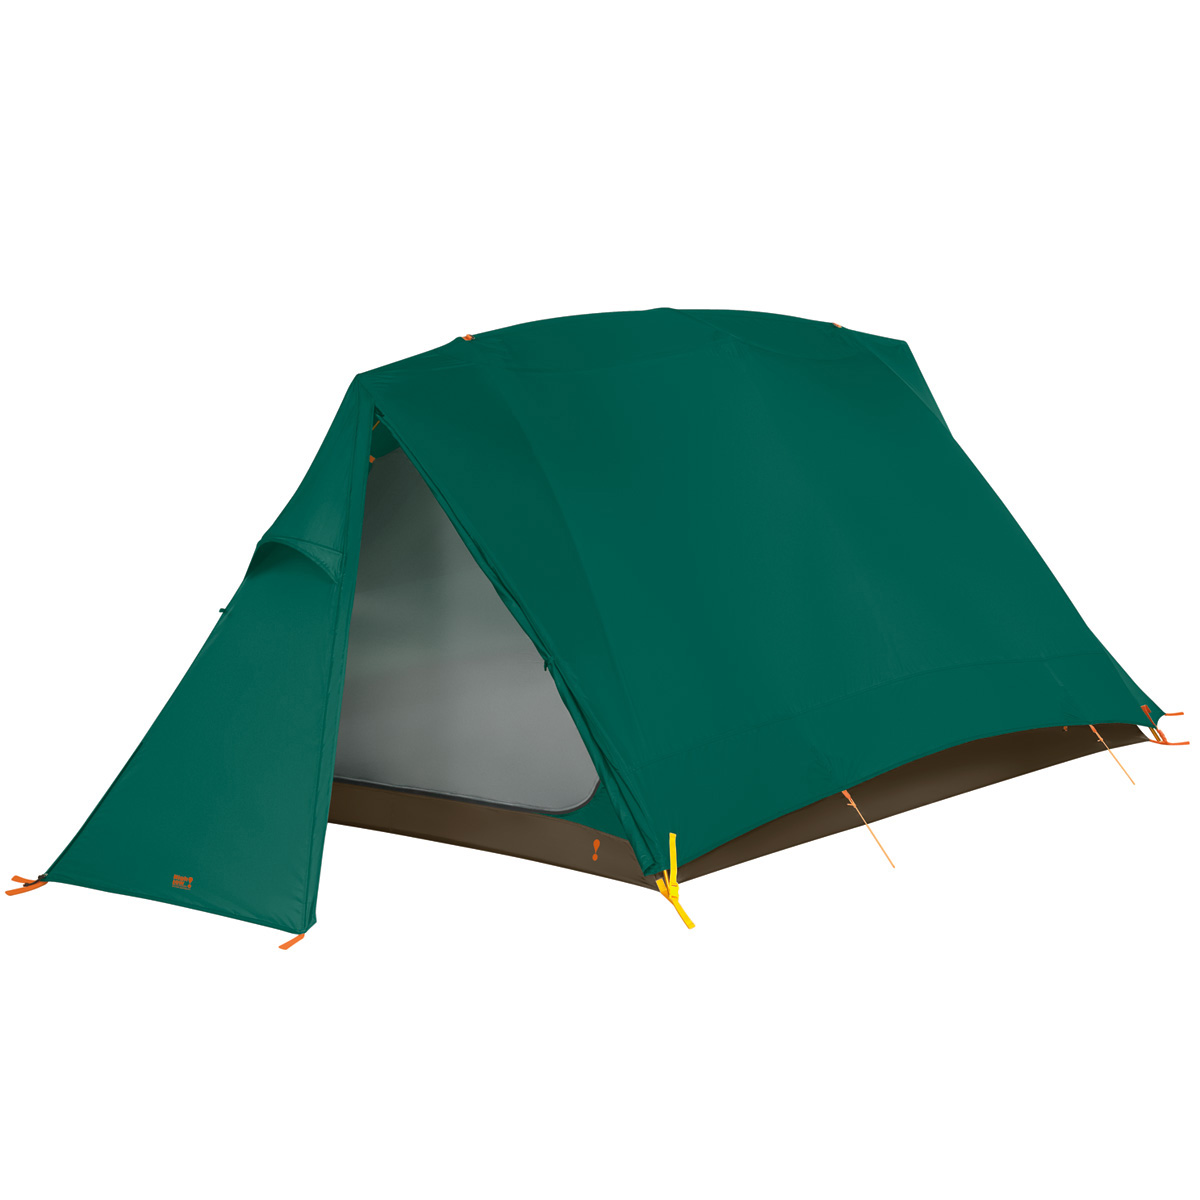 Timberline® SQ 2XT 2 Person Tent  sc 1 st  Tents - Johnson Outdoors & Timberline® SQ 2XT 2 Person Tent | Eureka!